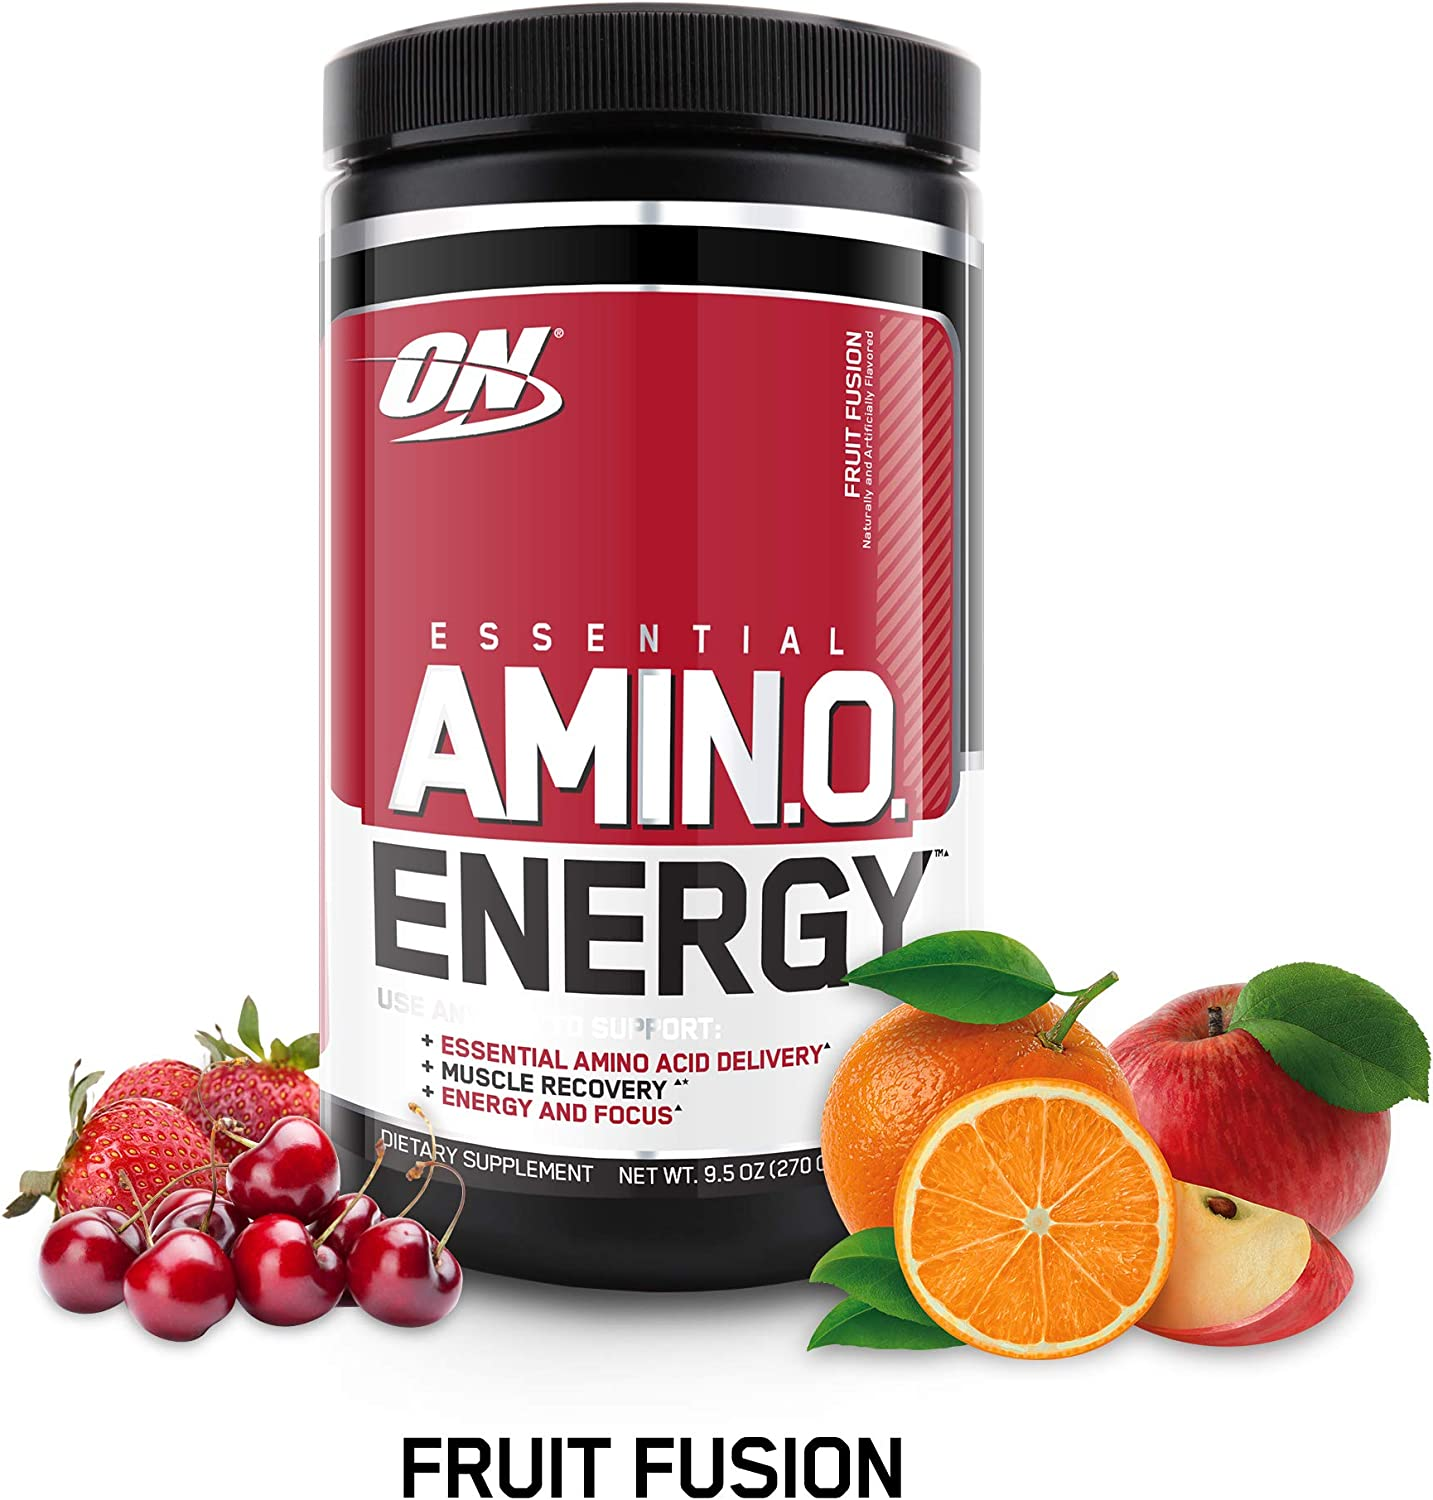 OPTIMUM NUTRITION ESSENTIAL AMINO ENERGY, Fruit Fusion, Keto Friendly Preworkout and Essential Amino Acids with Green Tea and Green Coffee Extract, 9.5 Ounce (Pack of 1)